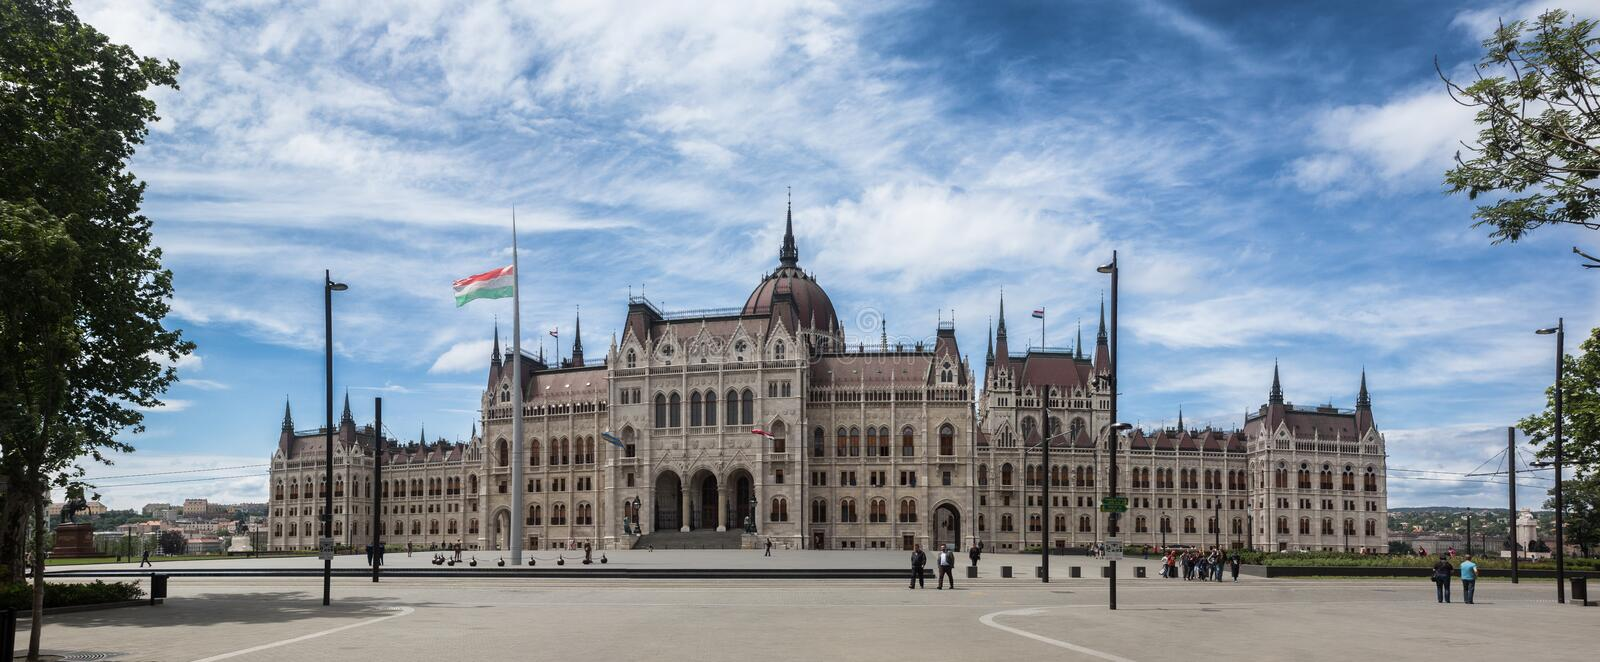 Budapest parliament front panorama royalty free stock photography